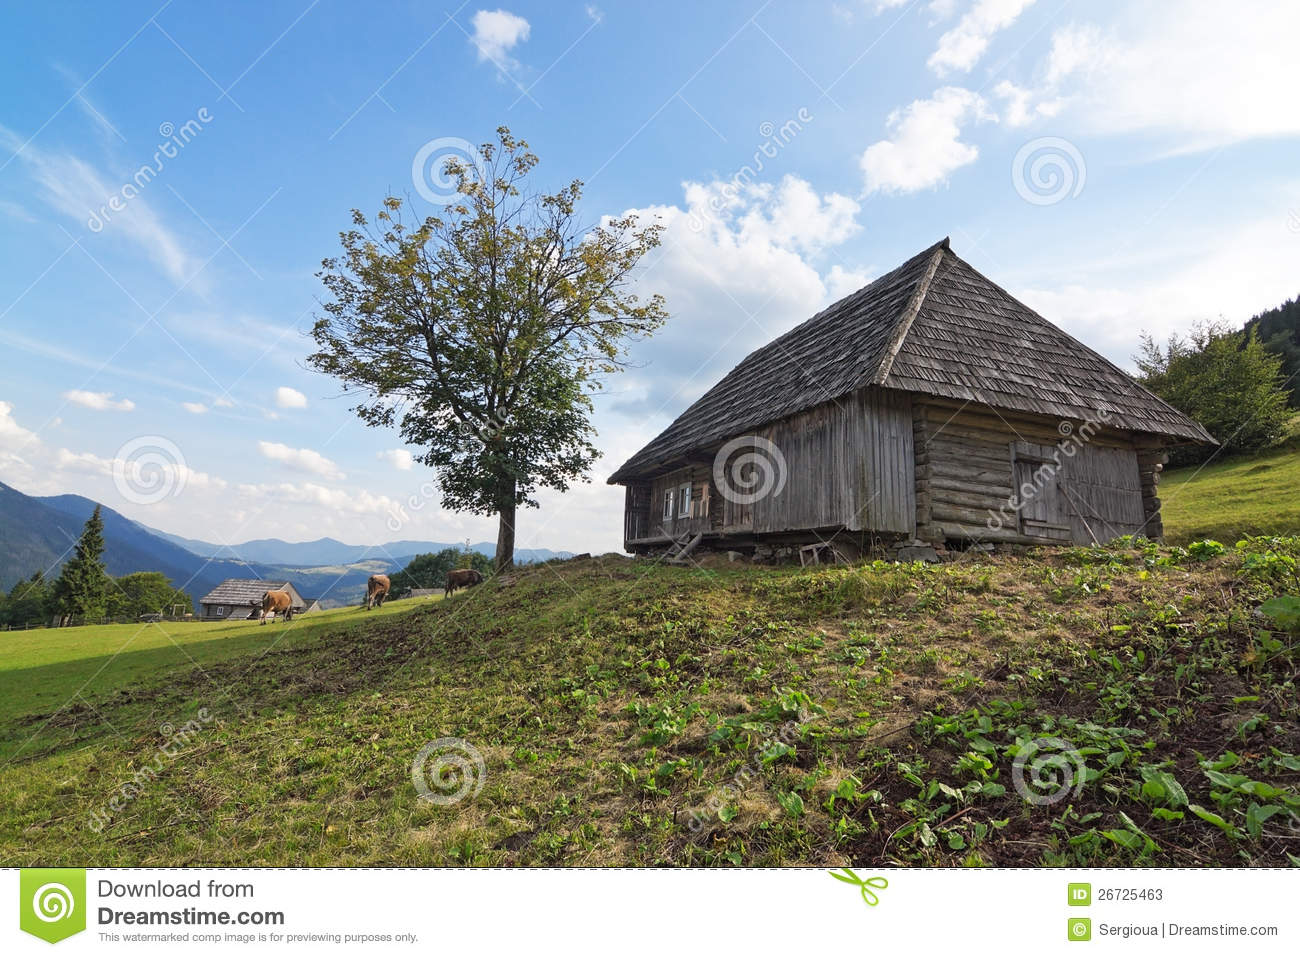 Classic old wooden house in a landscape stock photos for Classic house landscape